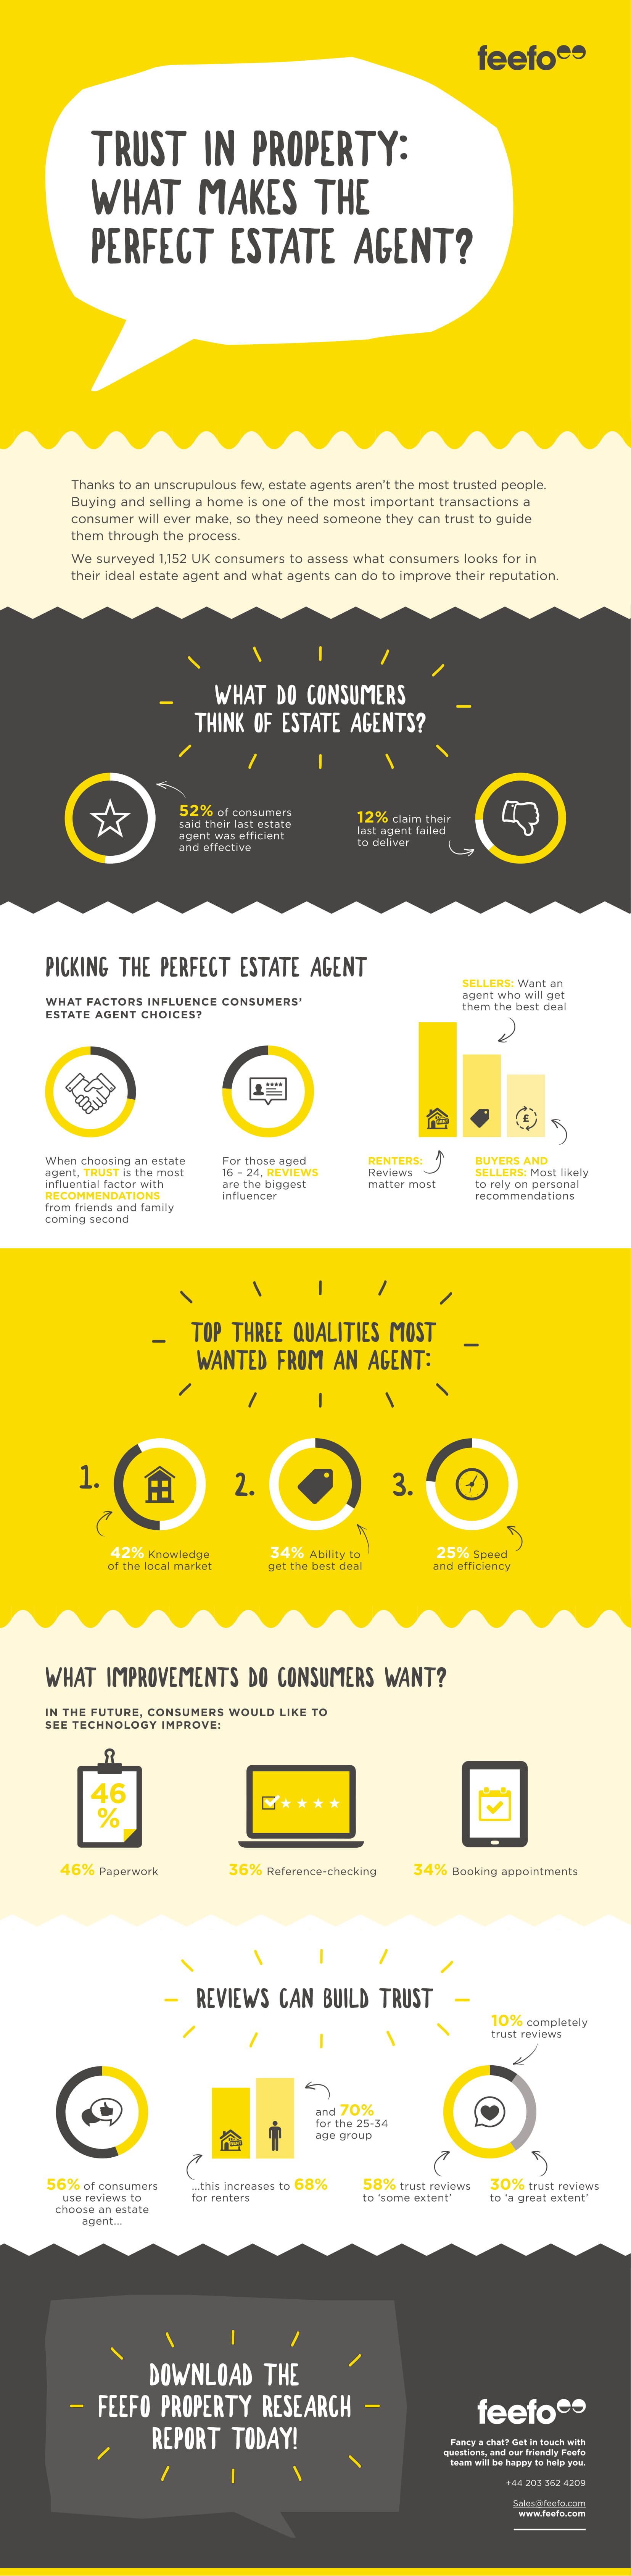 Trust in property infographic-1.jpg